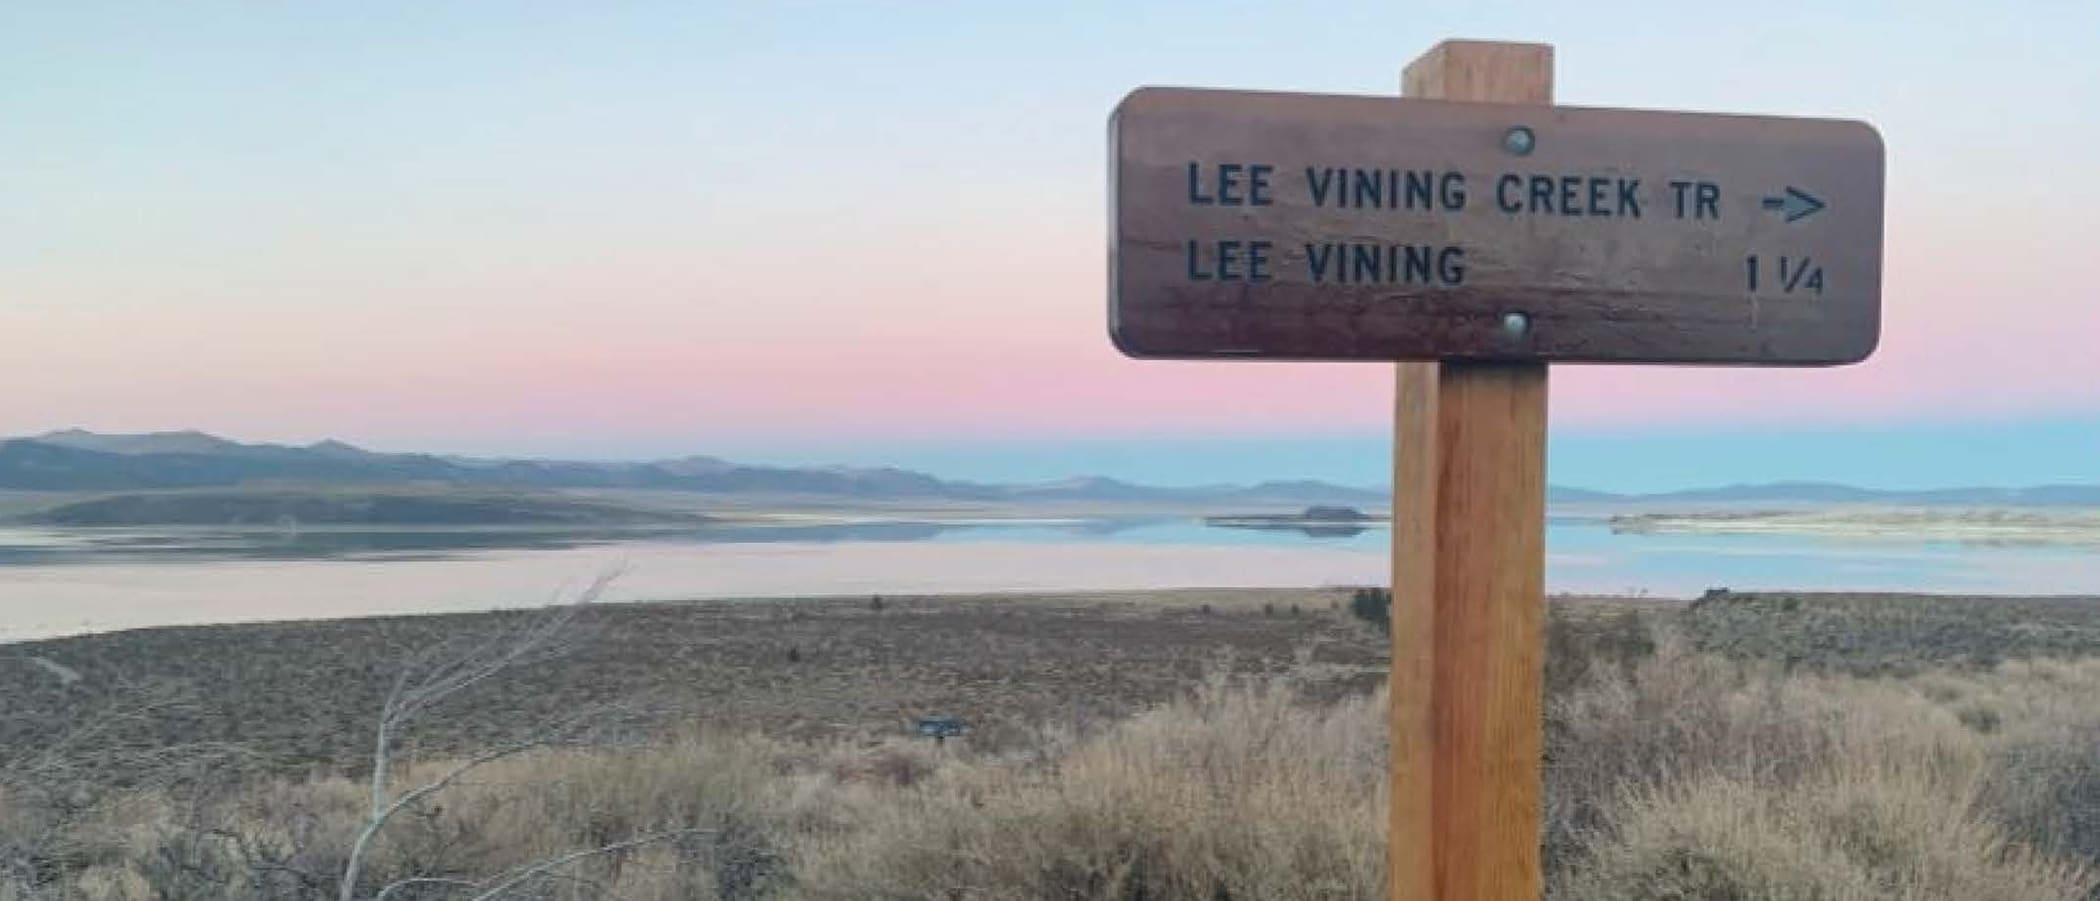 A wooden trailhead for Lee Vining Creek stands against a sunset gradient of blur, yellow, and pink reflected in the Mono Lake water.